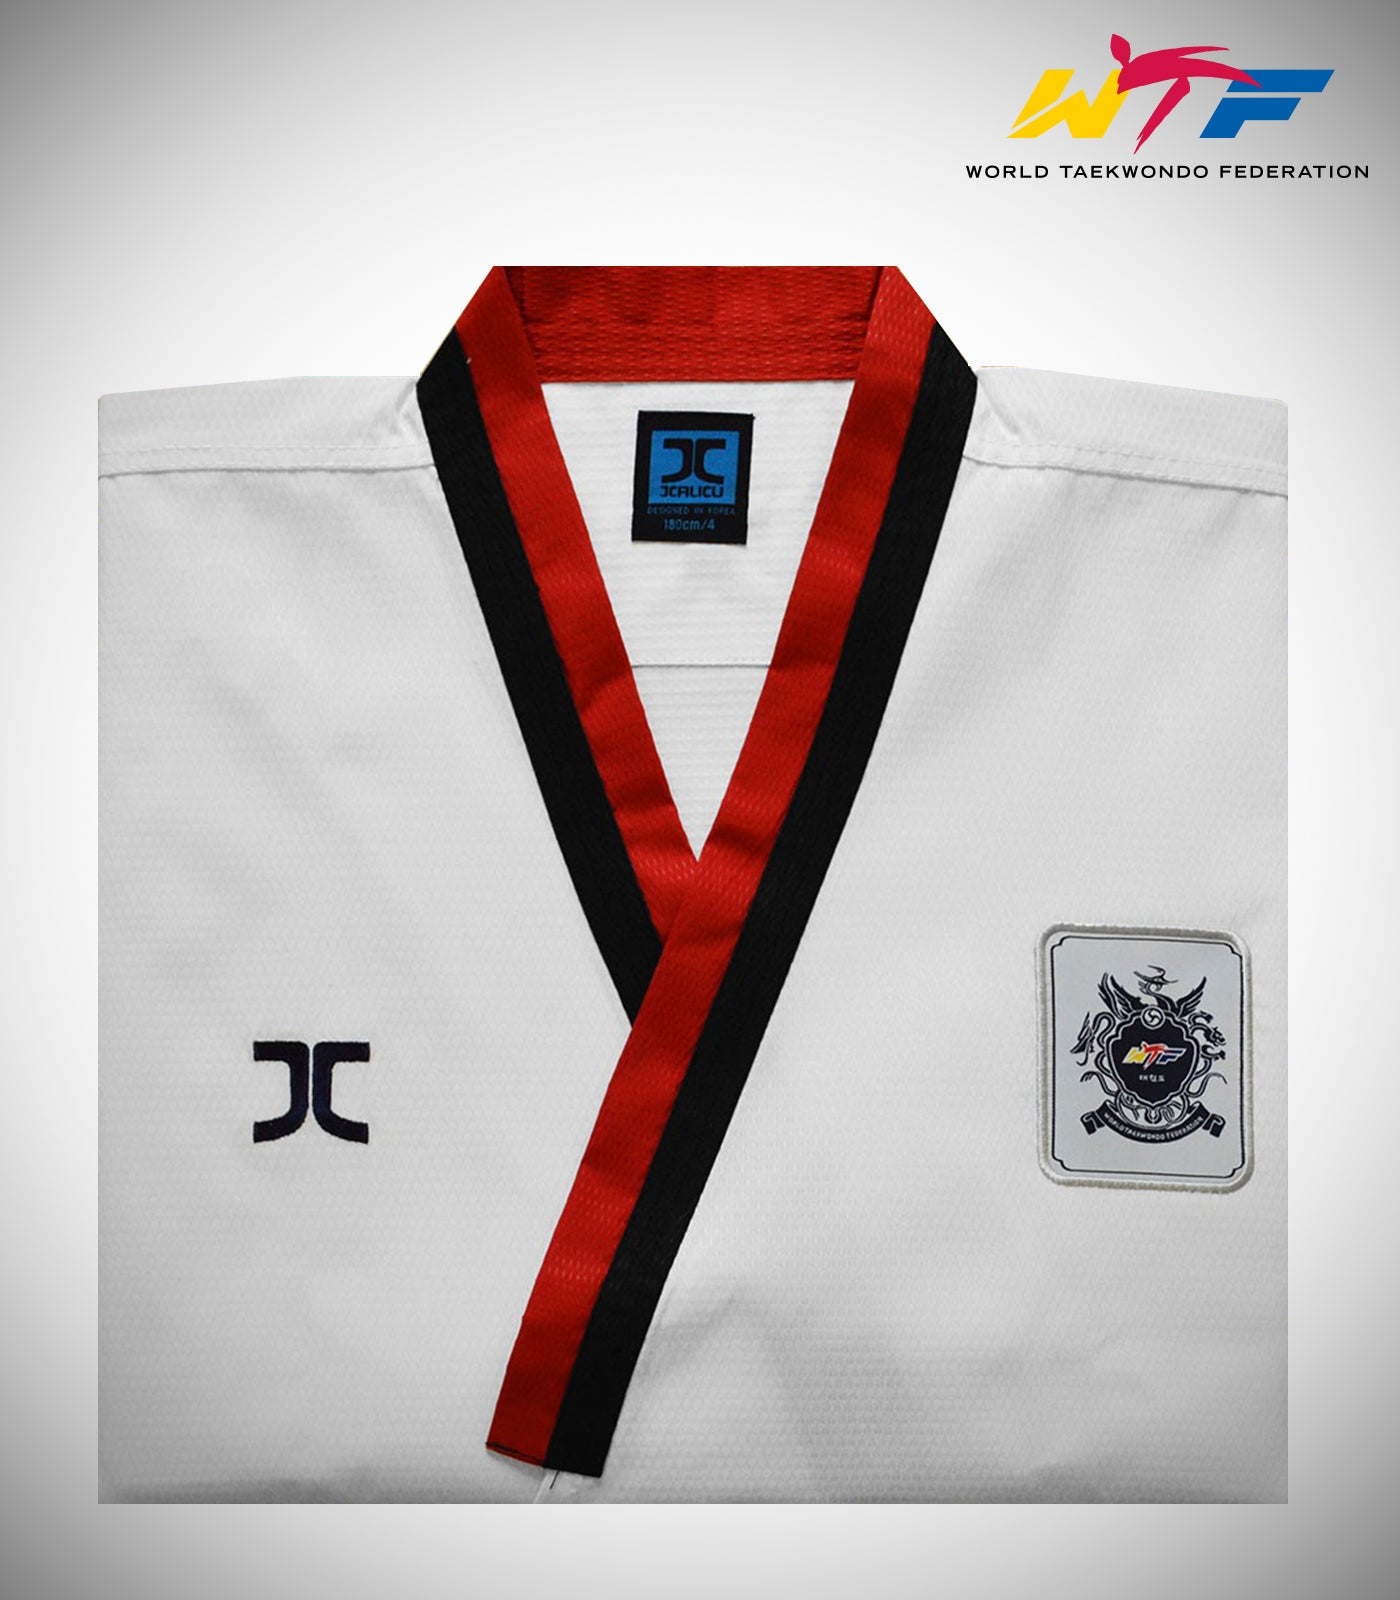 JC YOUTH FEMALE POOMSAE DIAMOND UNIFORM